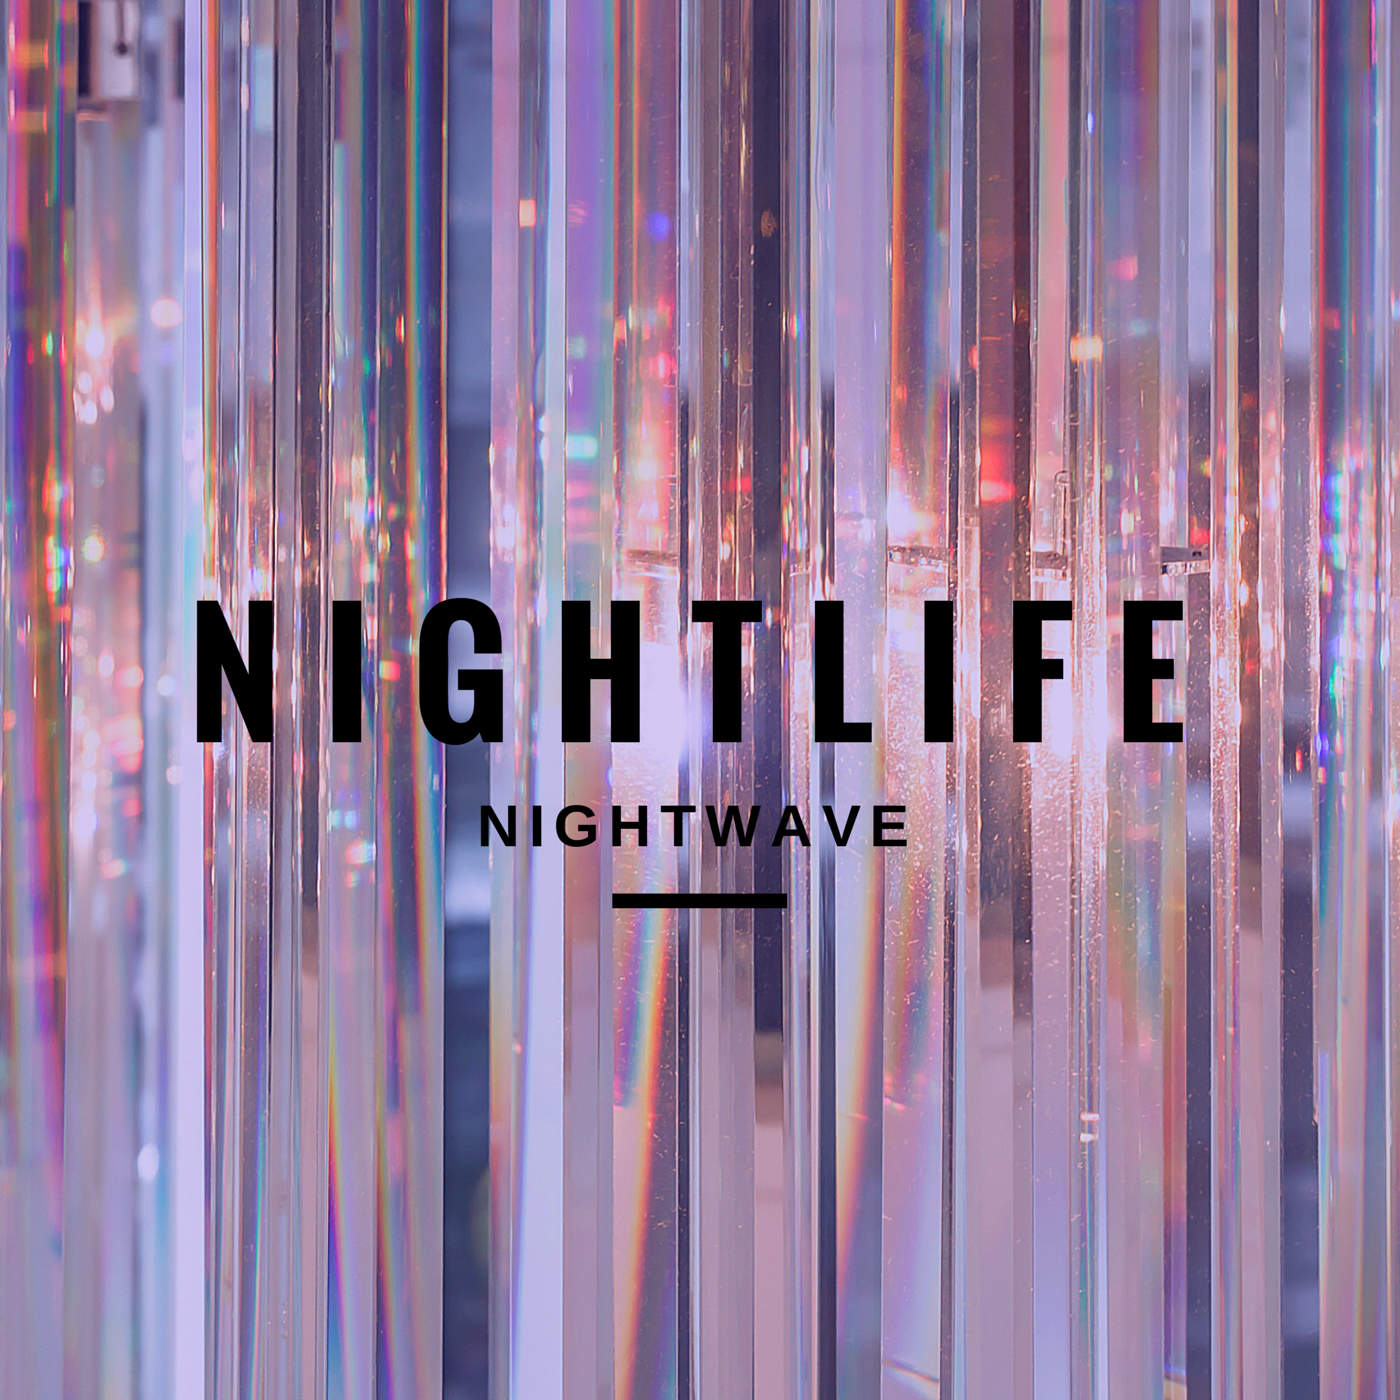 Nightwave - Nightlife [HKX004]